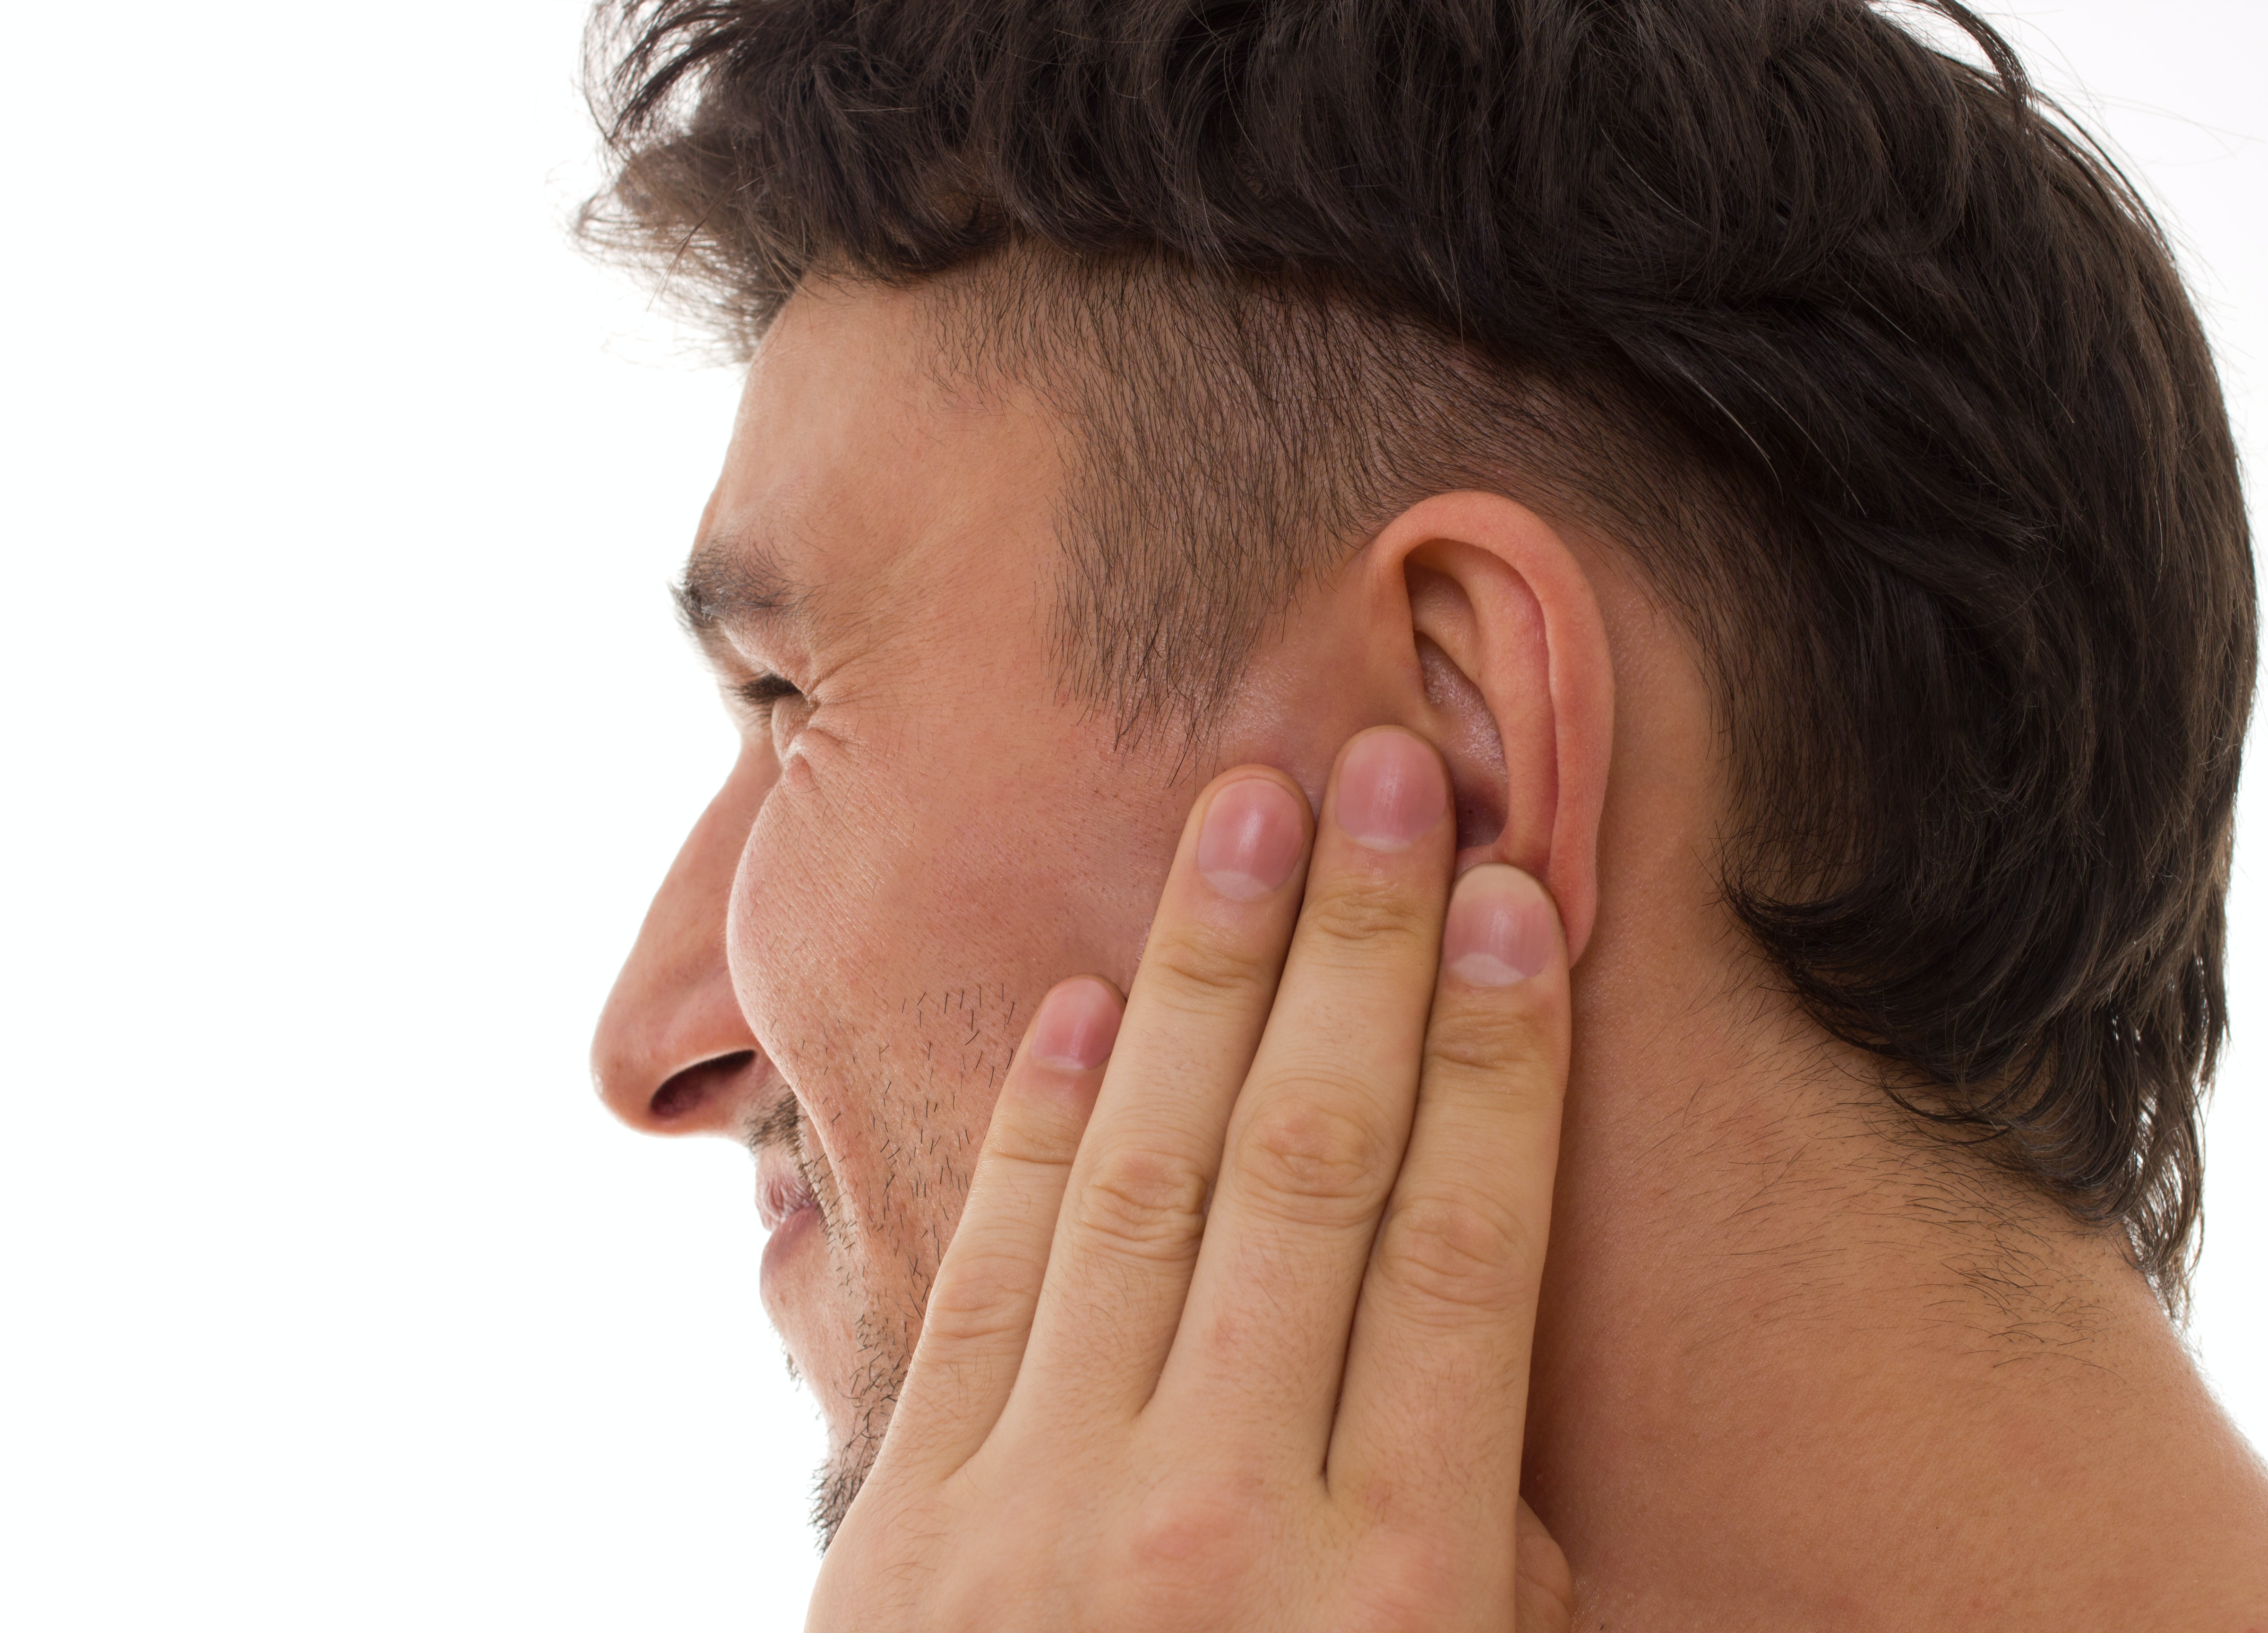 An image depicting a person suffering from outer ear pain symptoms